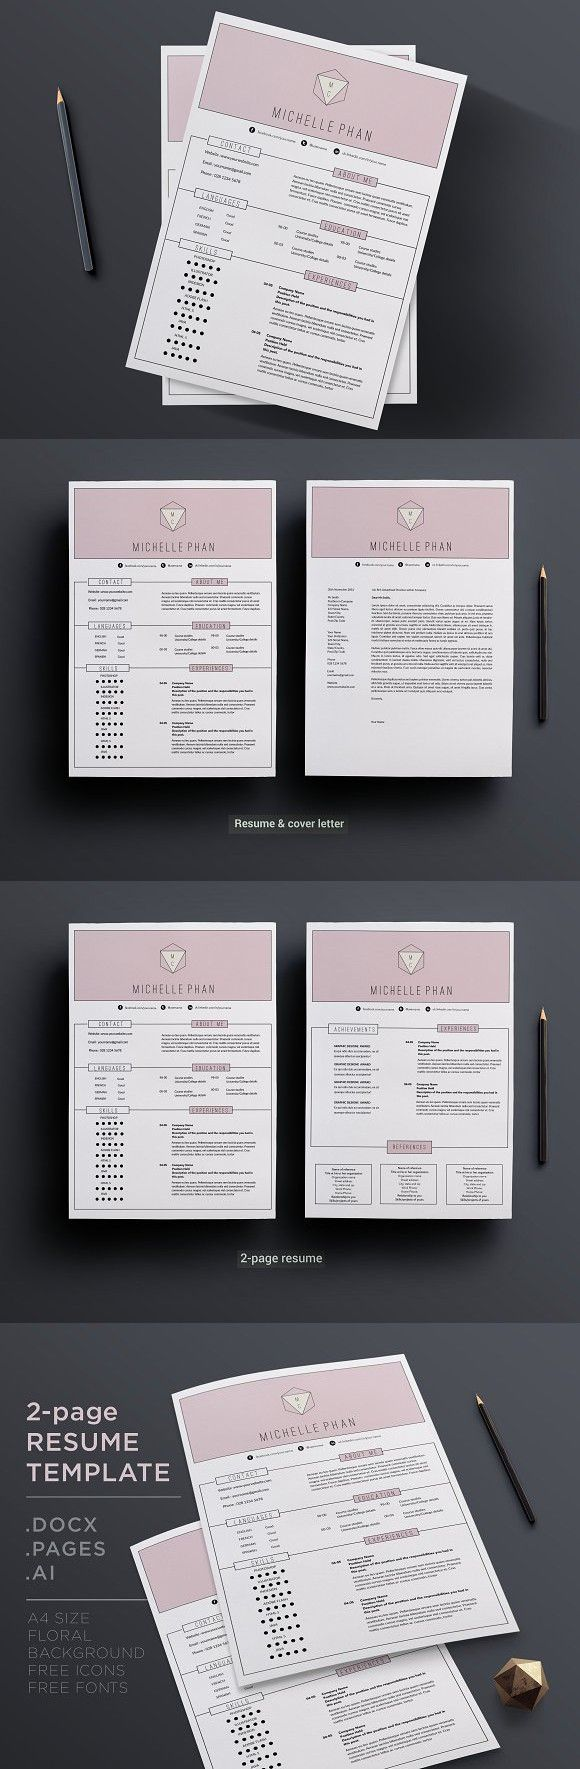 government resume sample%0A Modern   page resume template  template  cvdesign